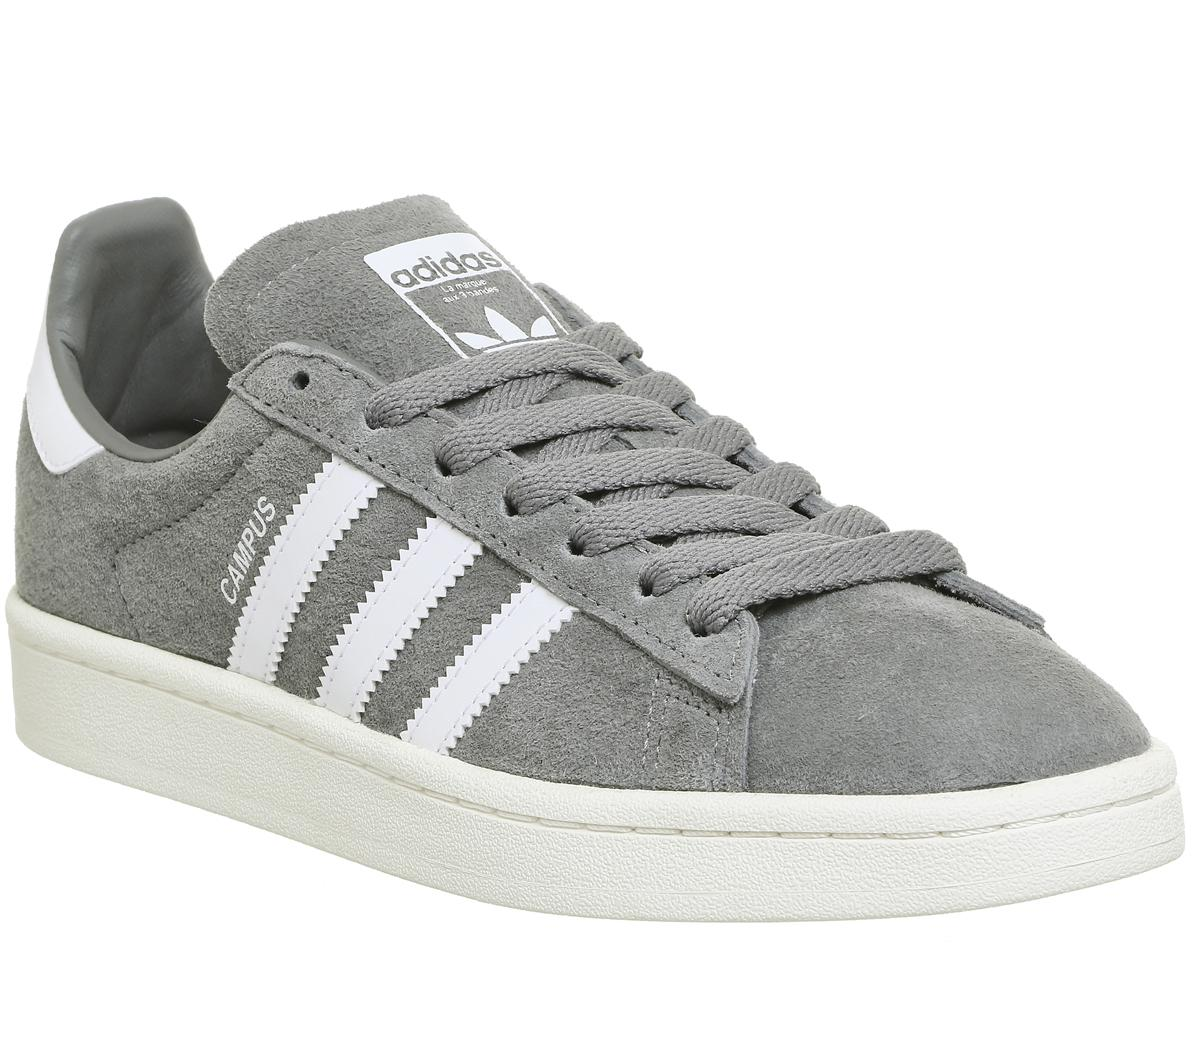 Mens Adidas Grey Suede Lace up Trainers Size UK 8 *Ex